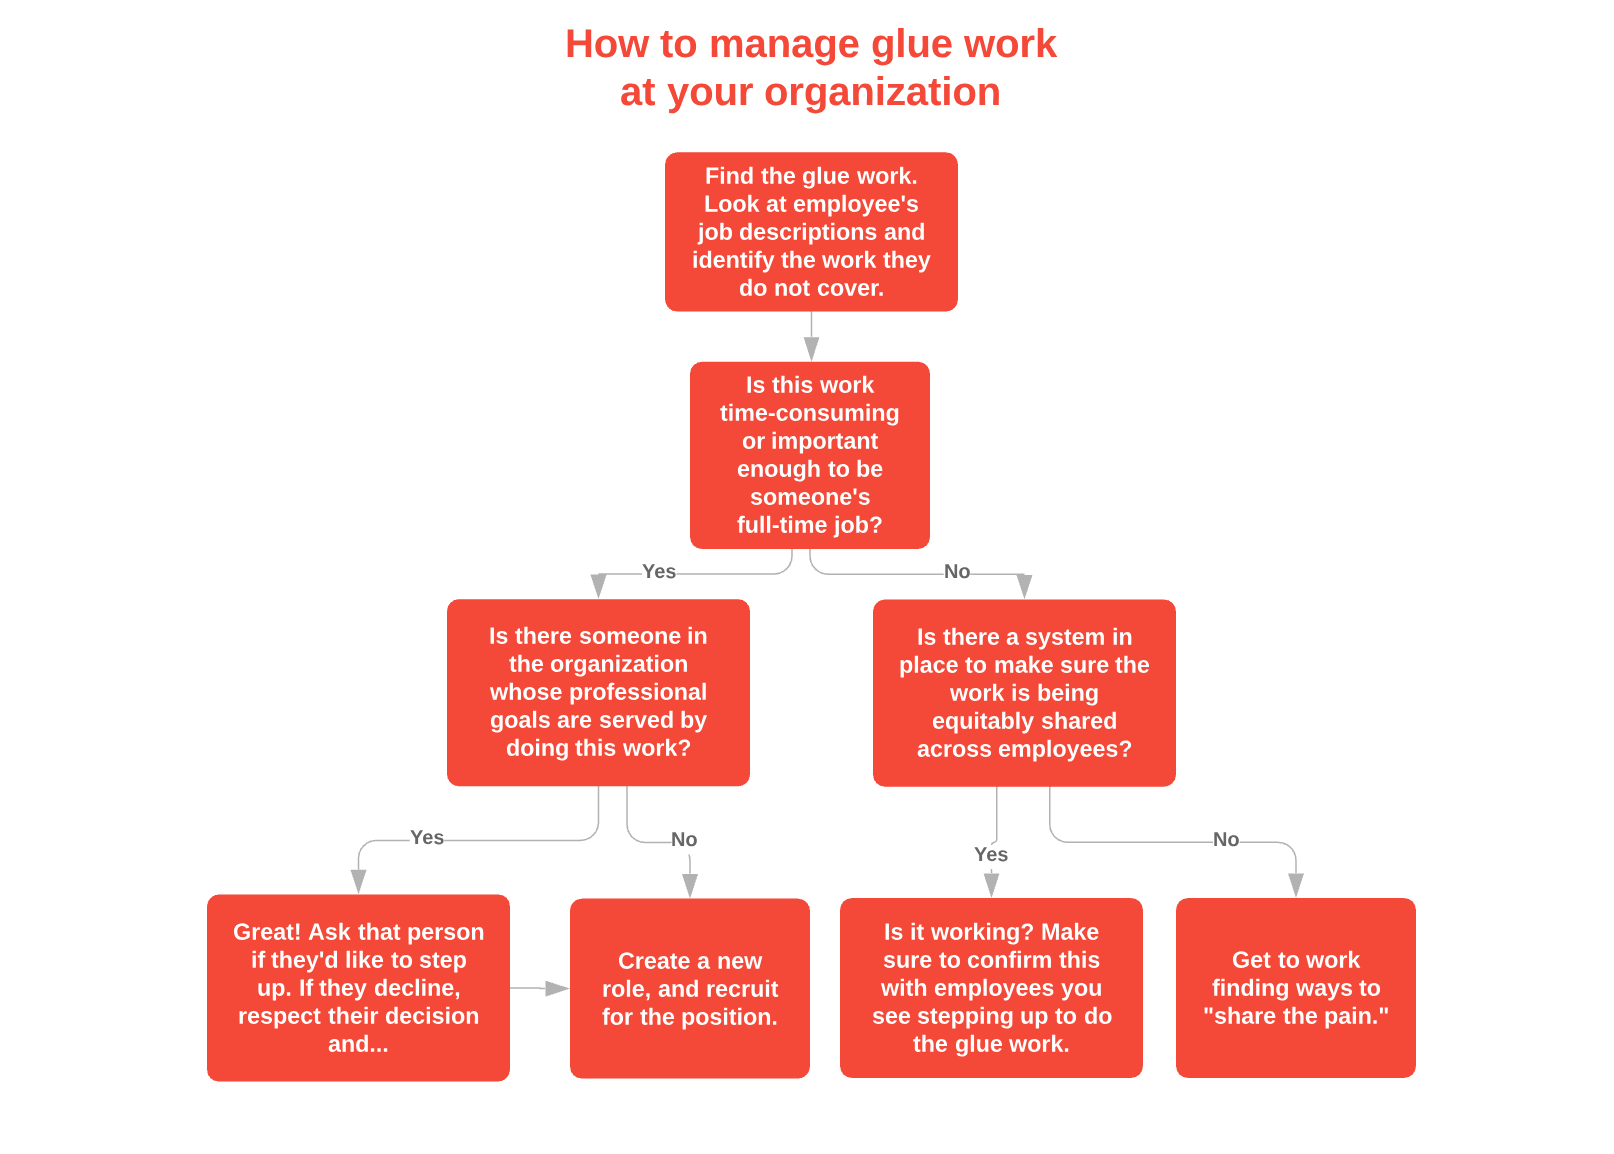 How to manage glue work at your organization